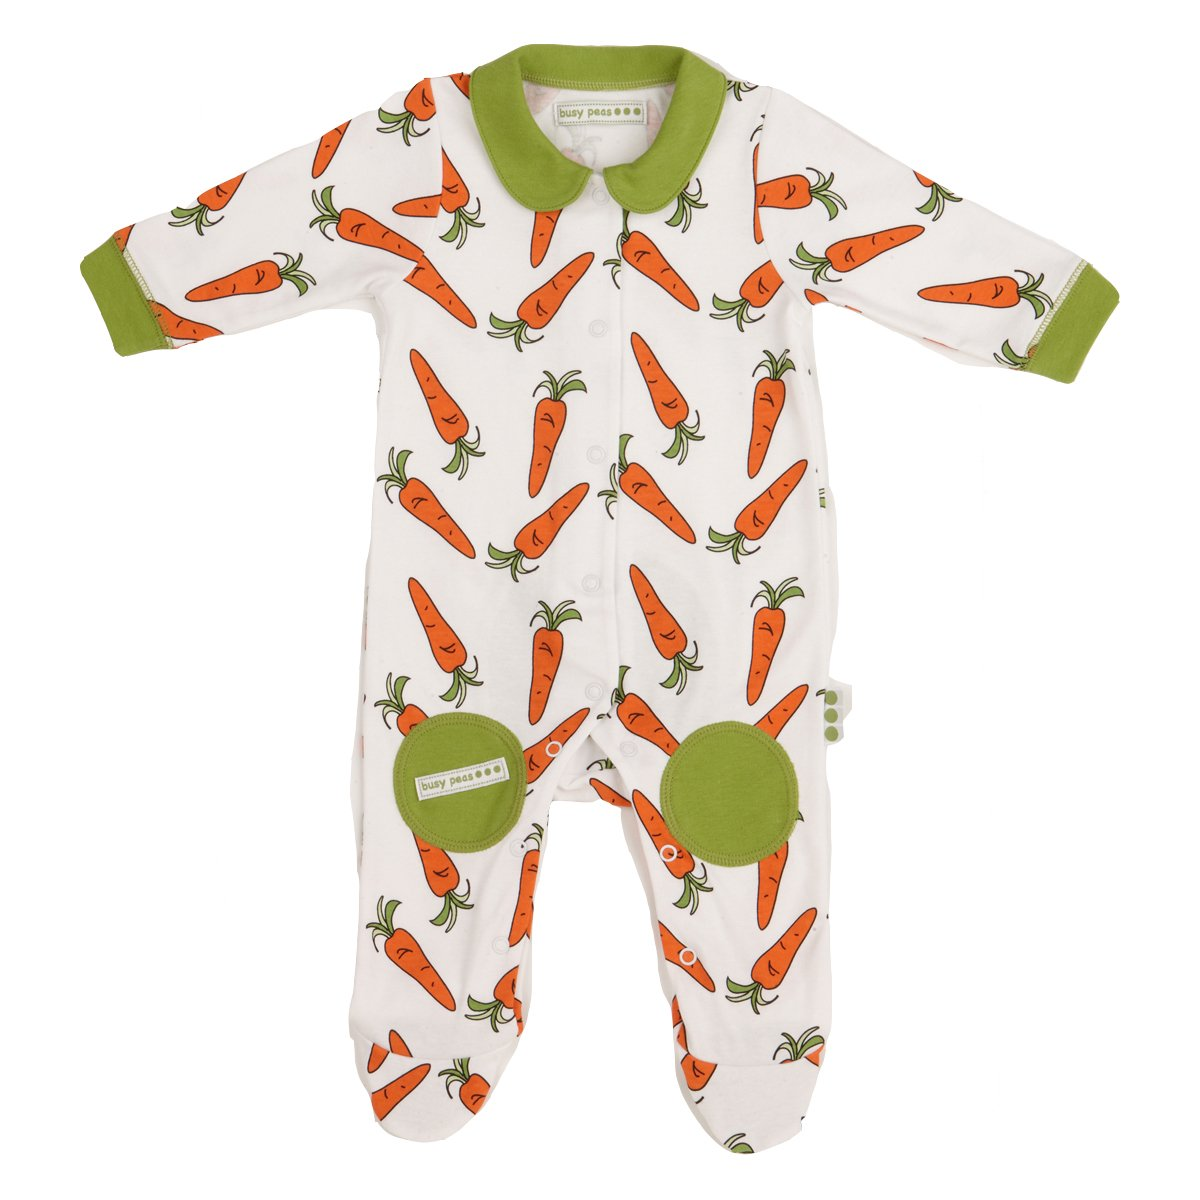 Busy Peas Carrot Print All In One 3 - 6 Months